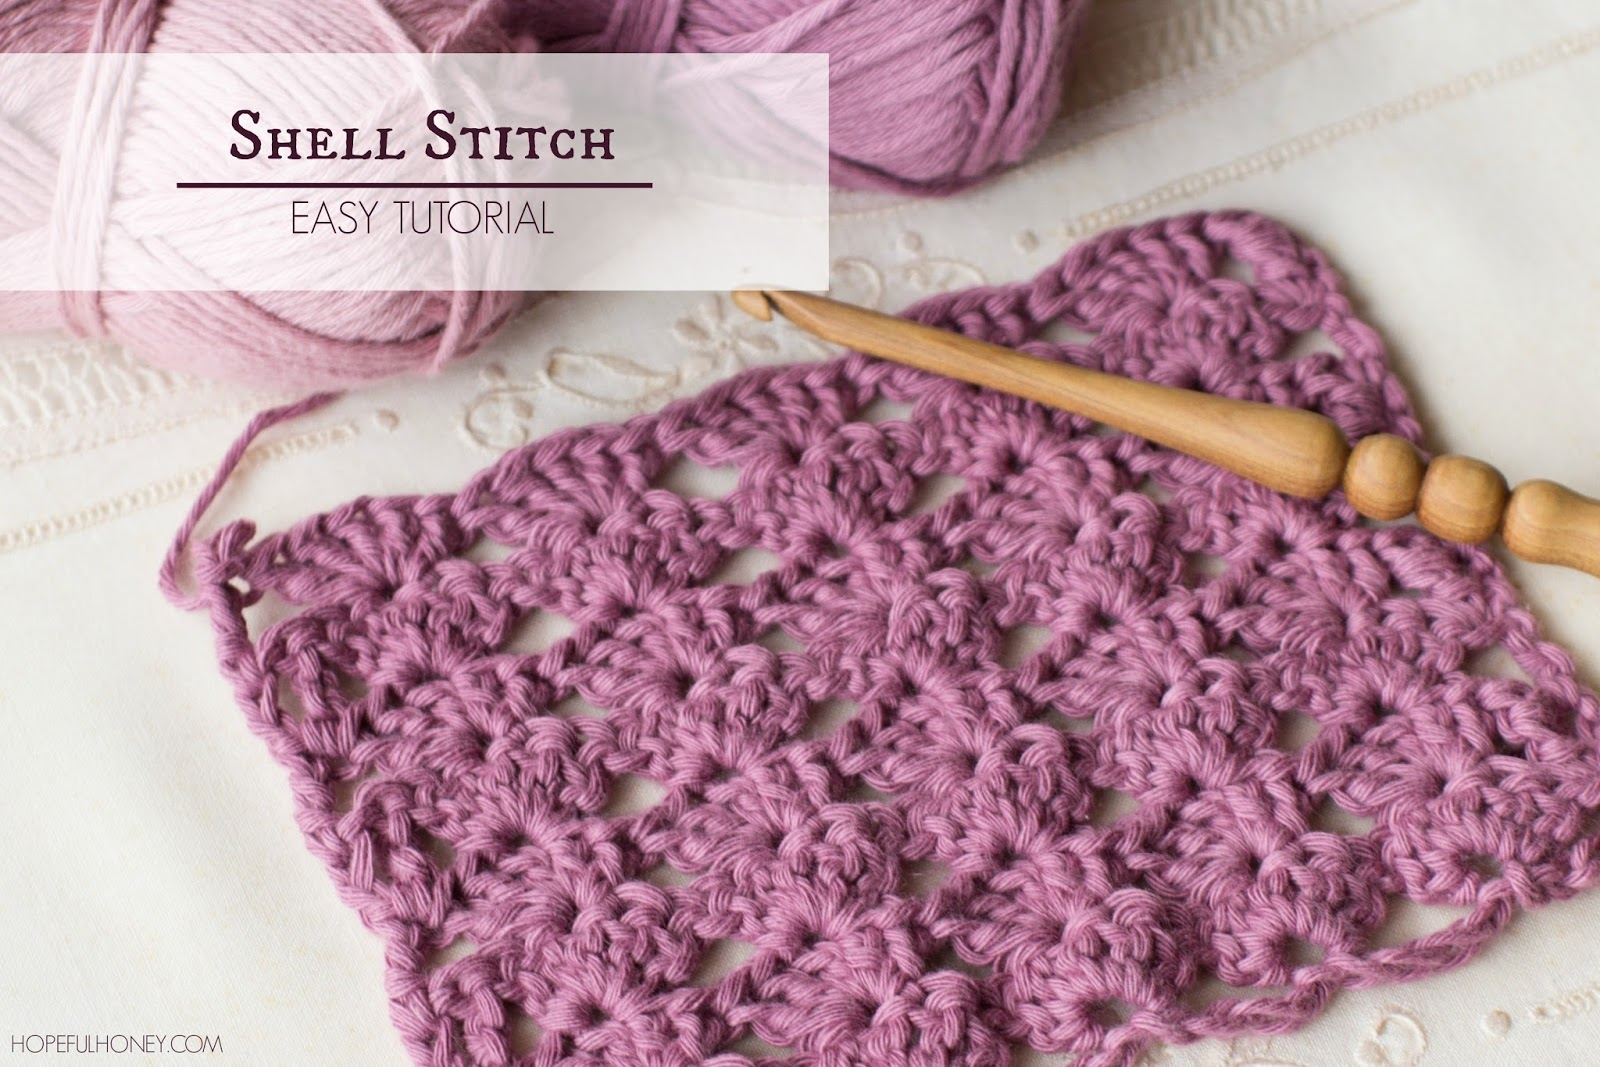 Crochet Stitches Learning : ... , Crochet, Create: How To: Crochet The Shell Stitch - Easy Tutorial